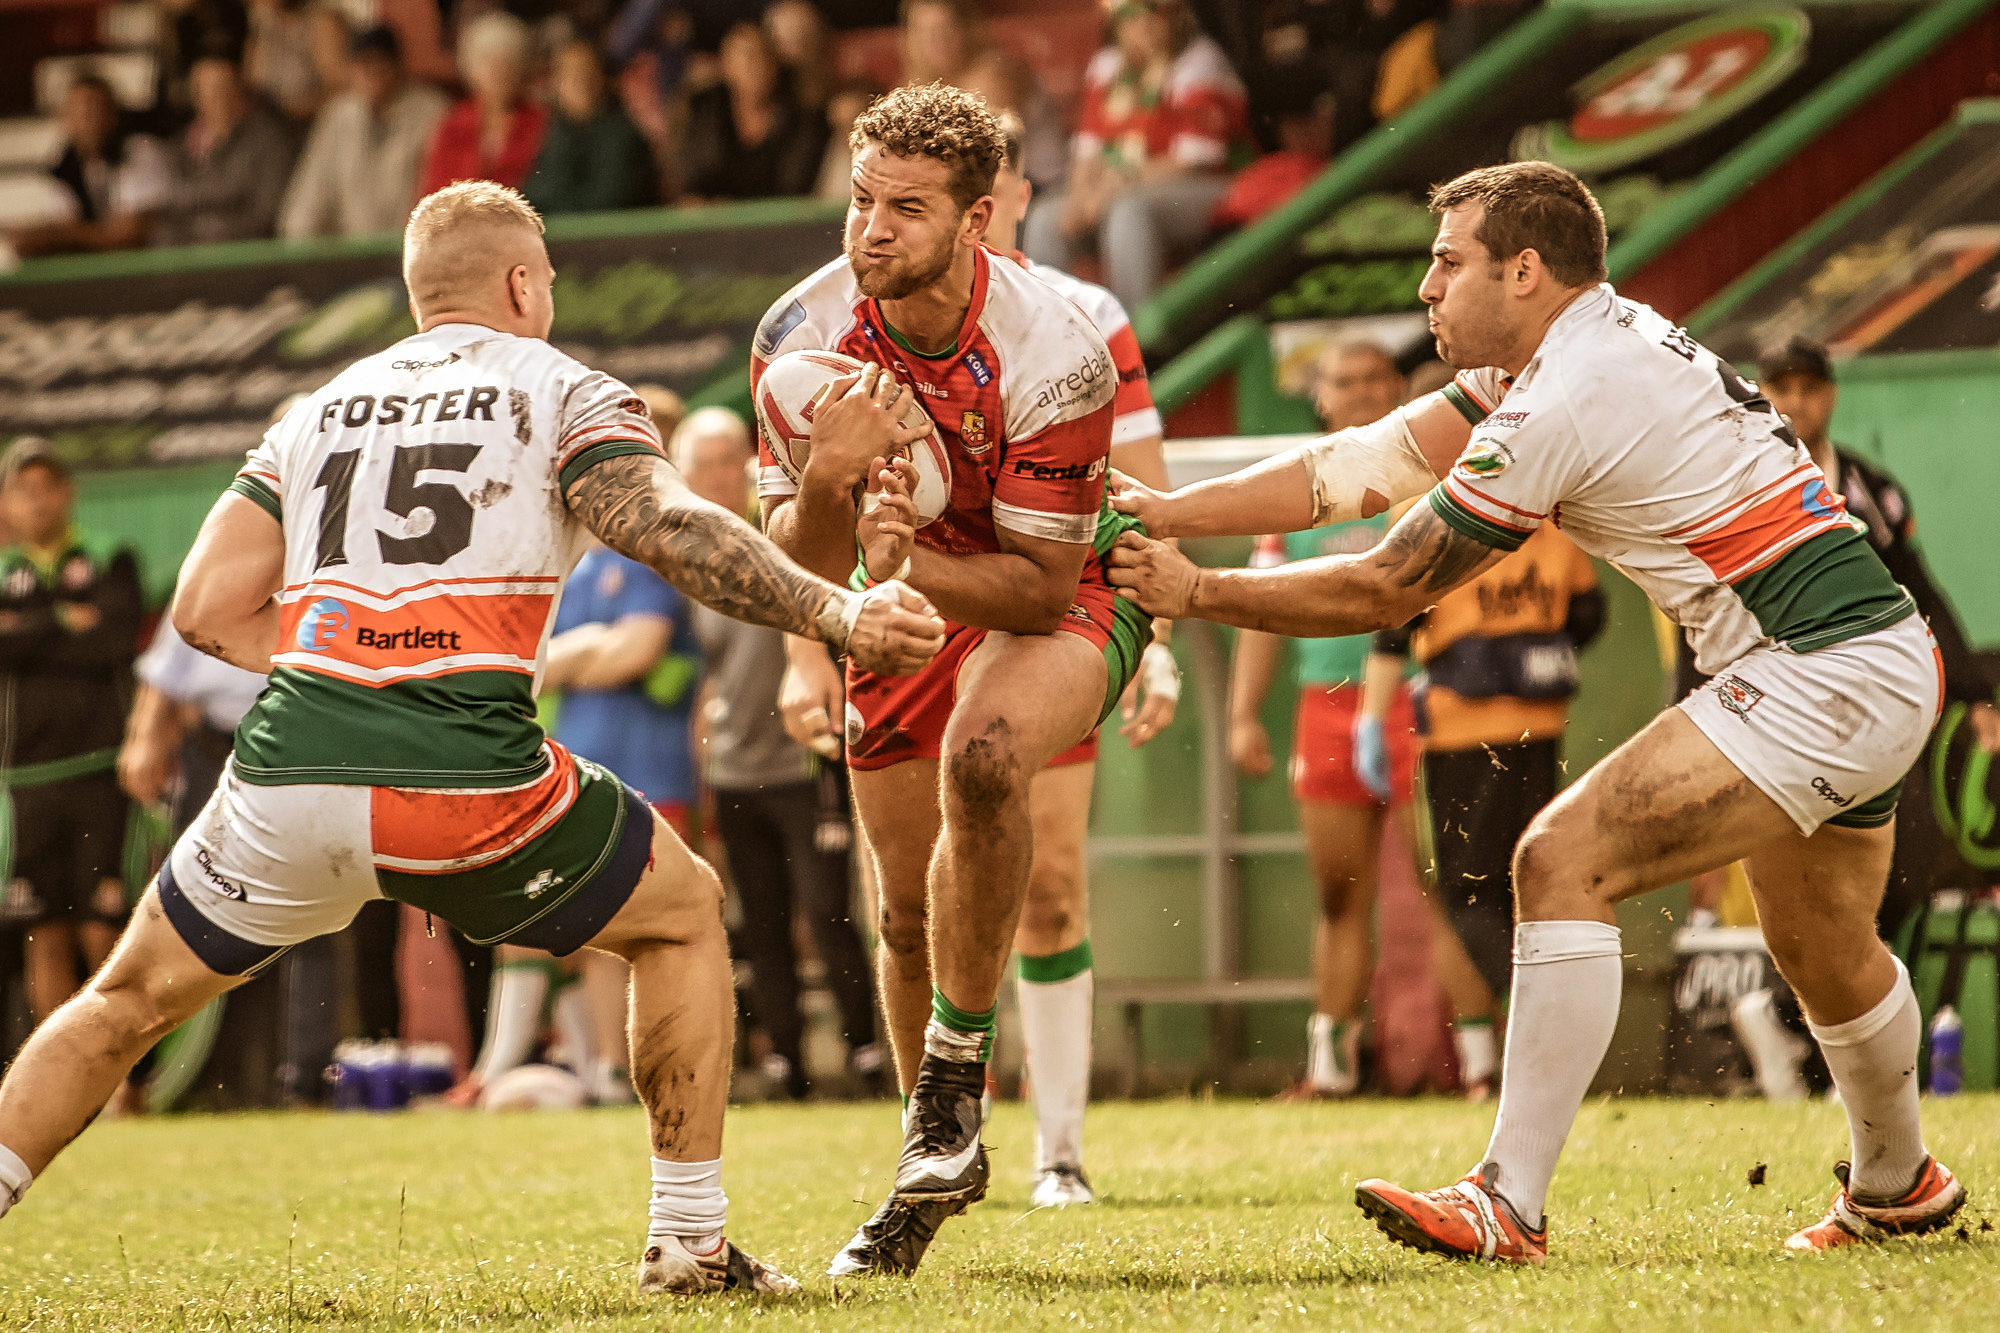 Two shots of Hamish Barnes on the attack